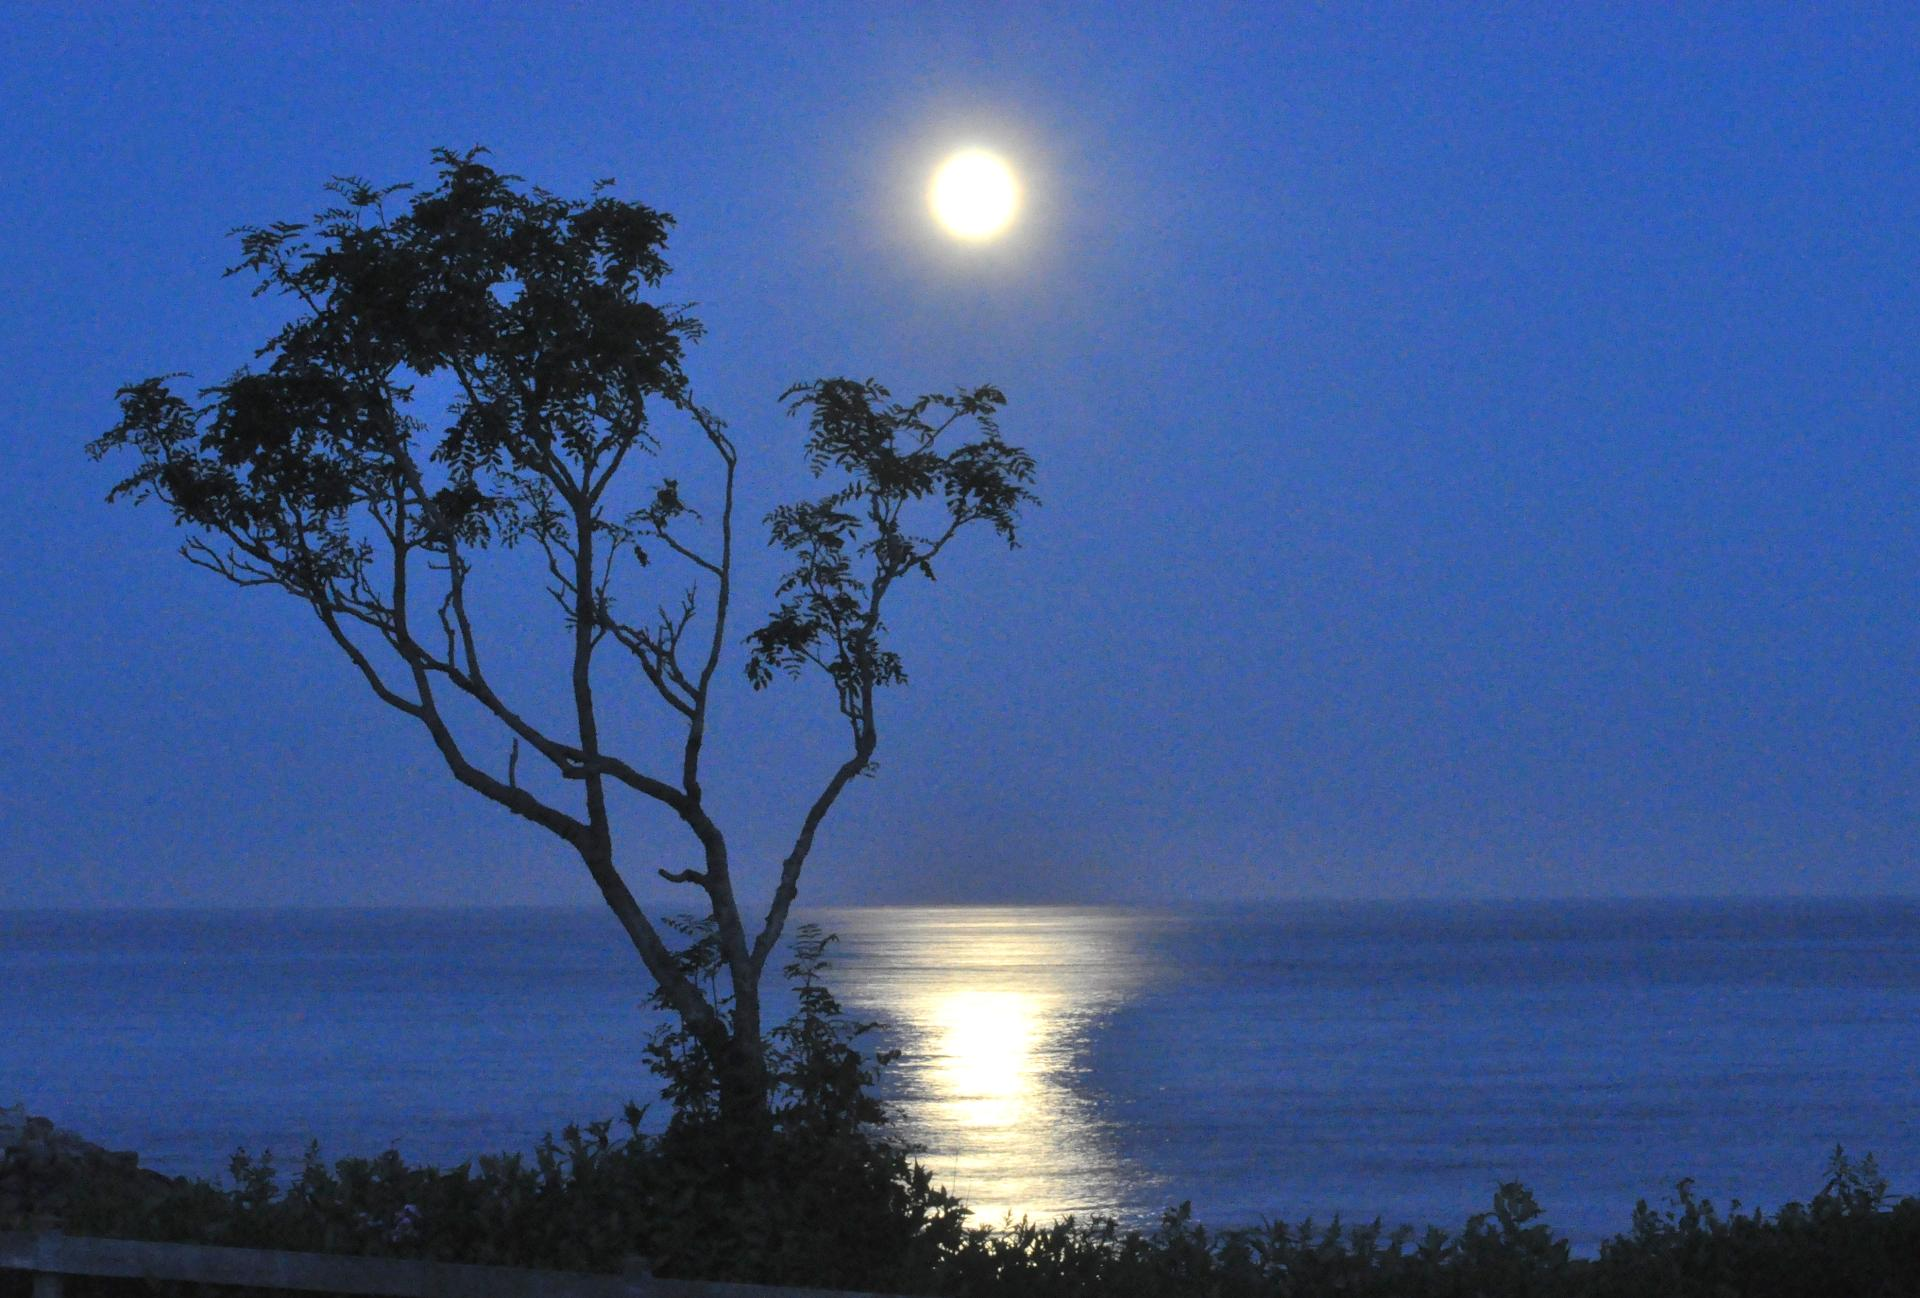 Moon in tree by shore